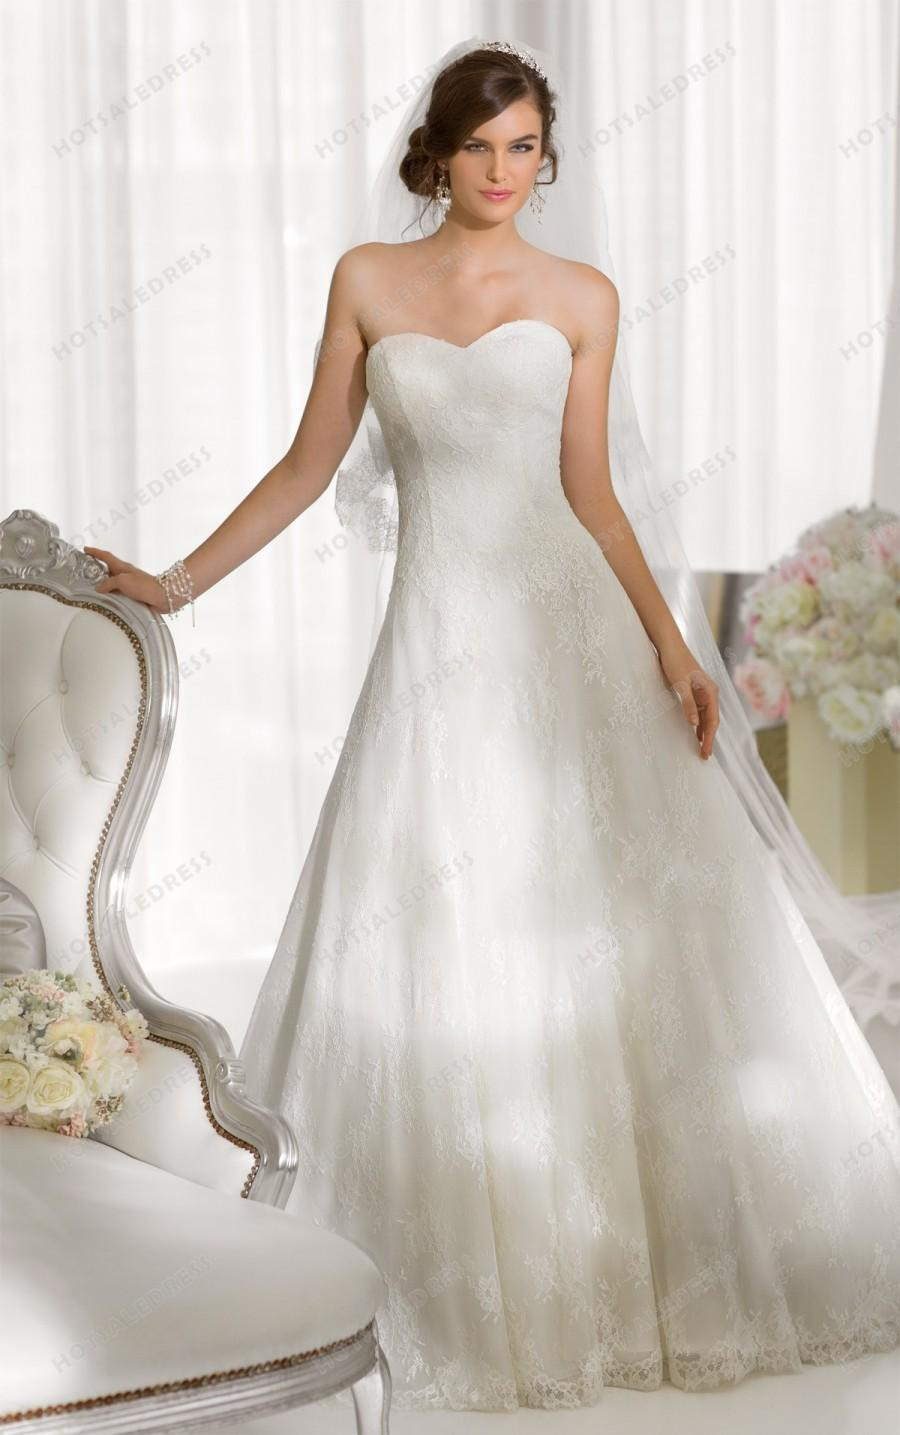 Essense Of Australia Wedding Dress Style D1574 #2365478 - Weddbook